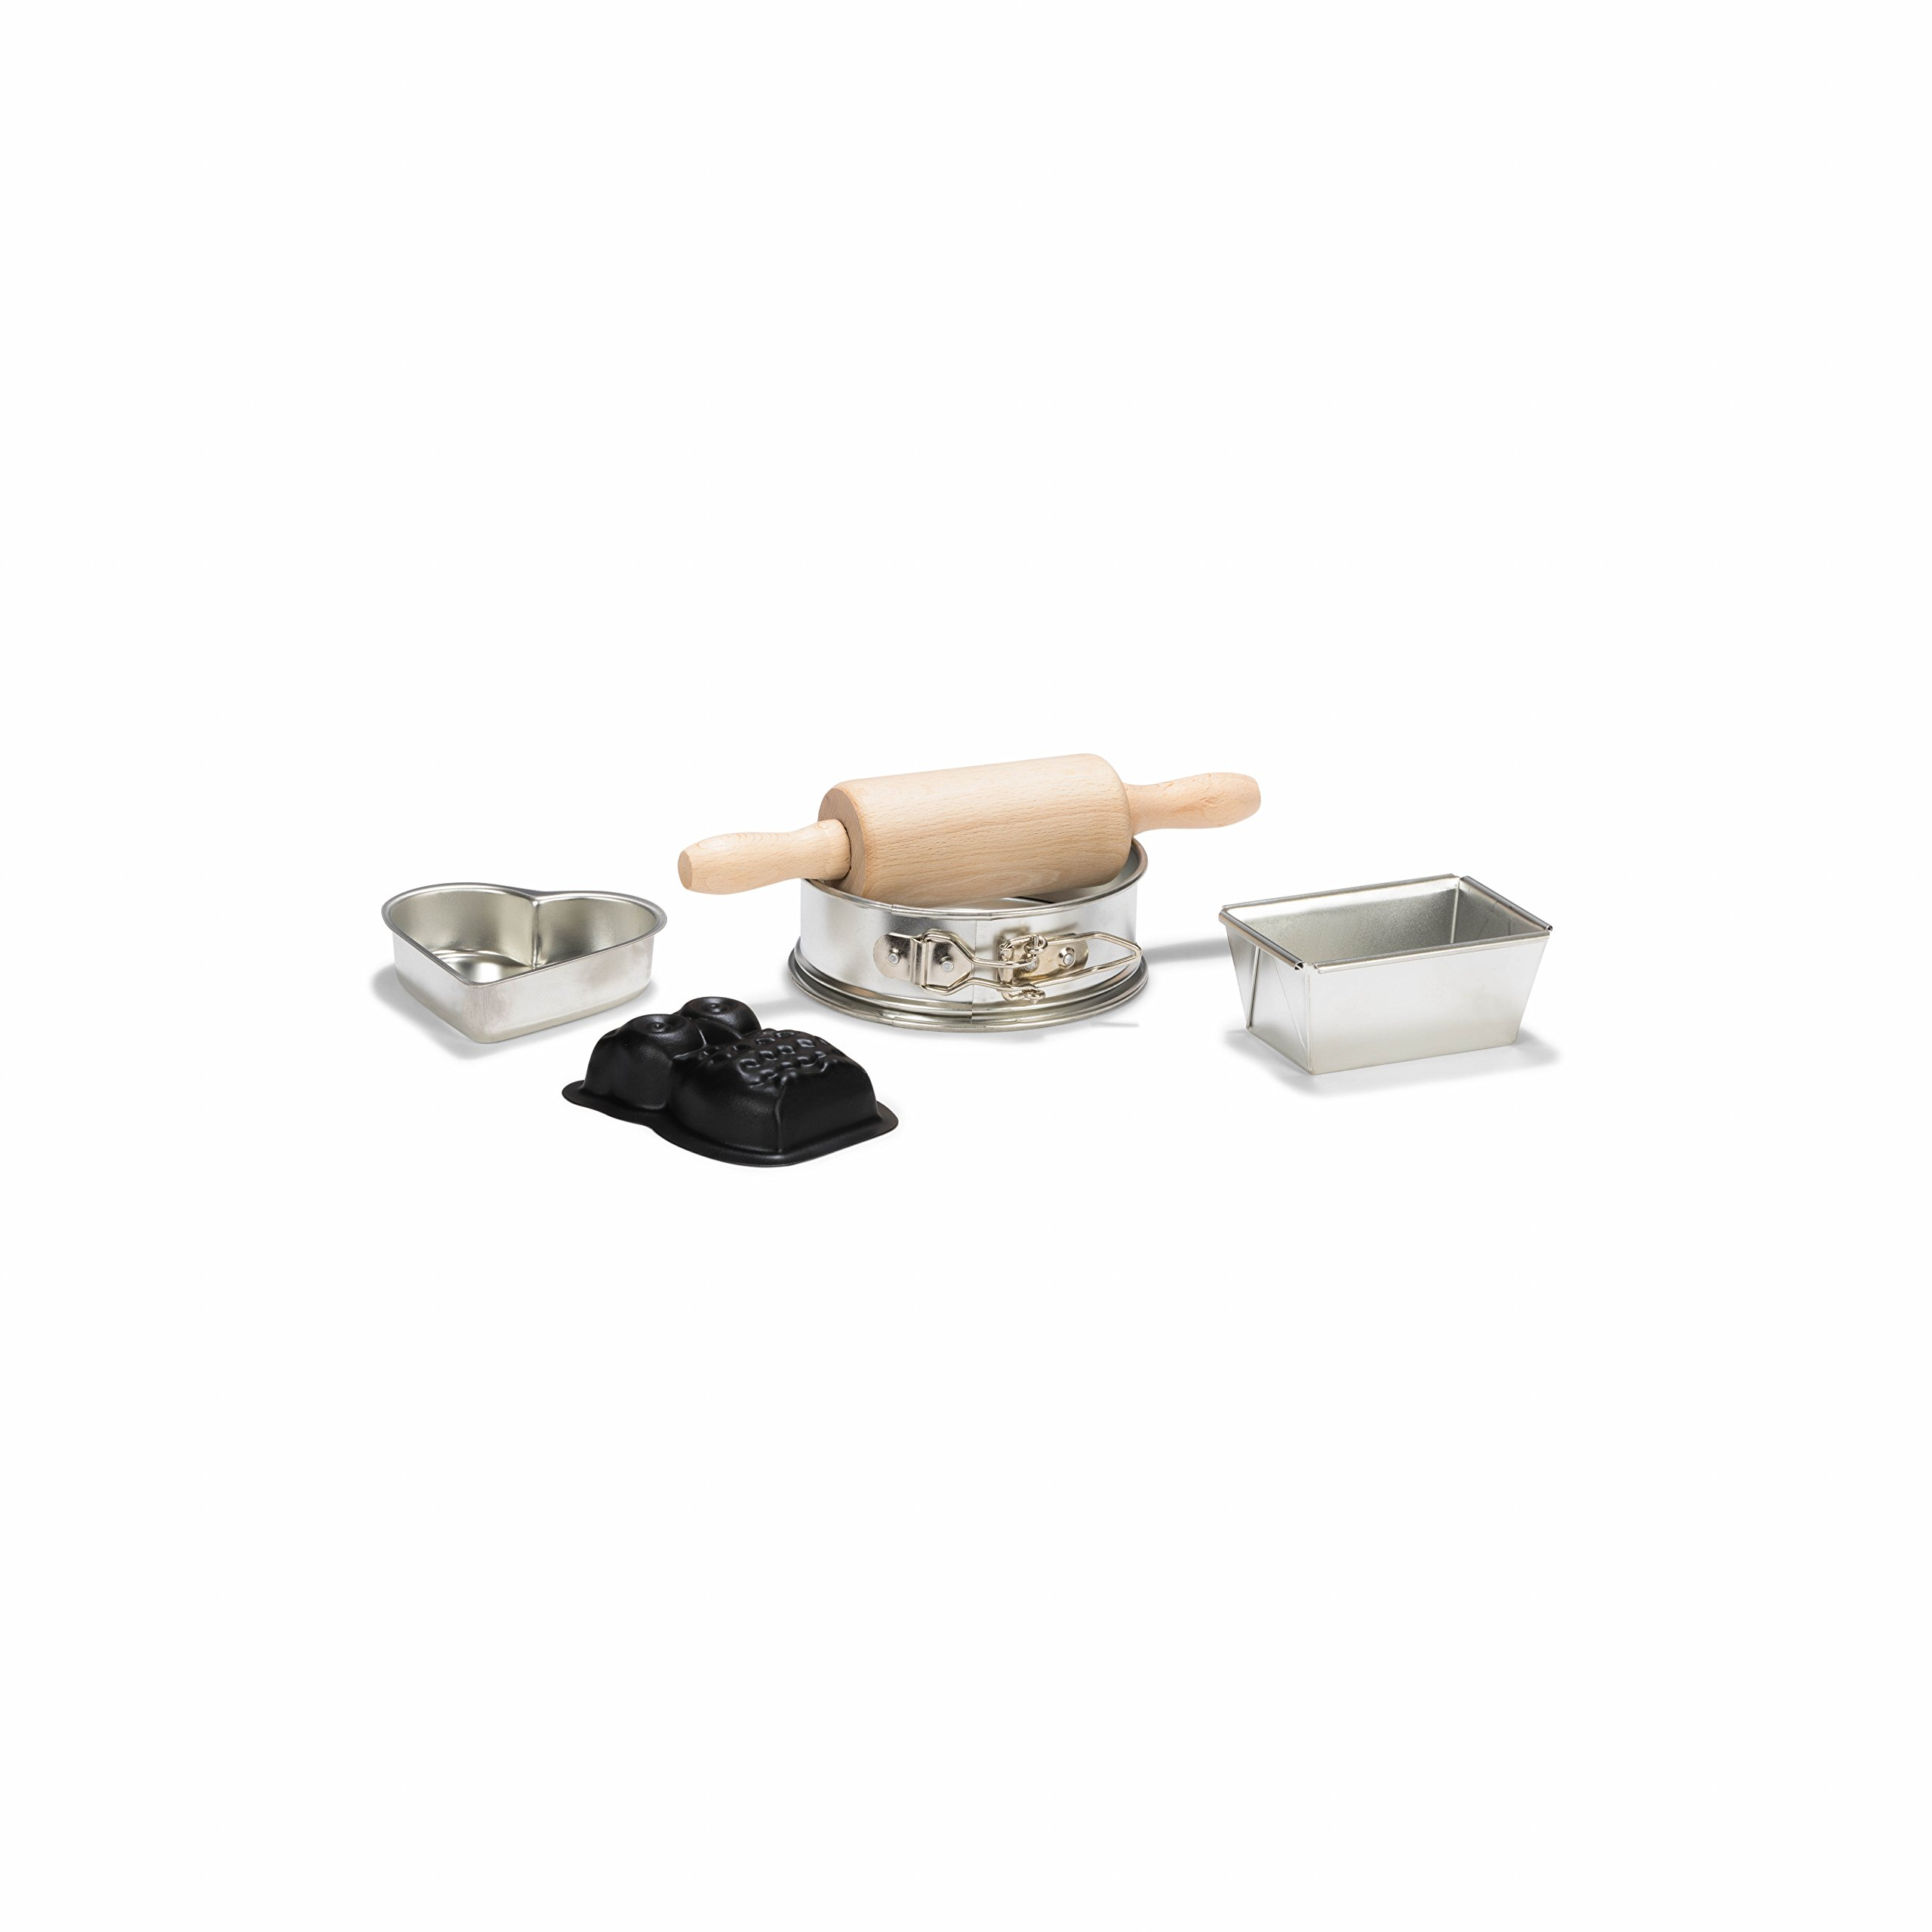 Patisse Kid's Baking Set, Metal